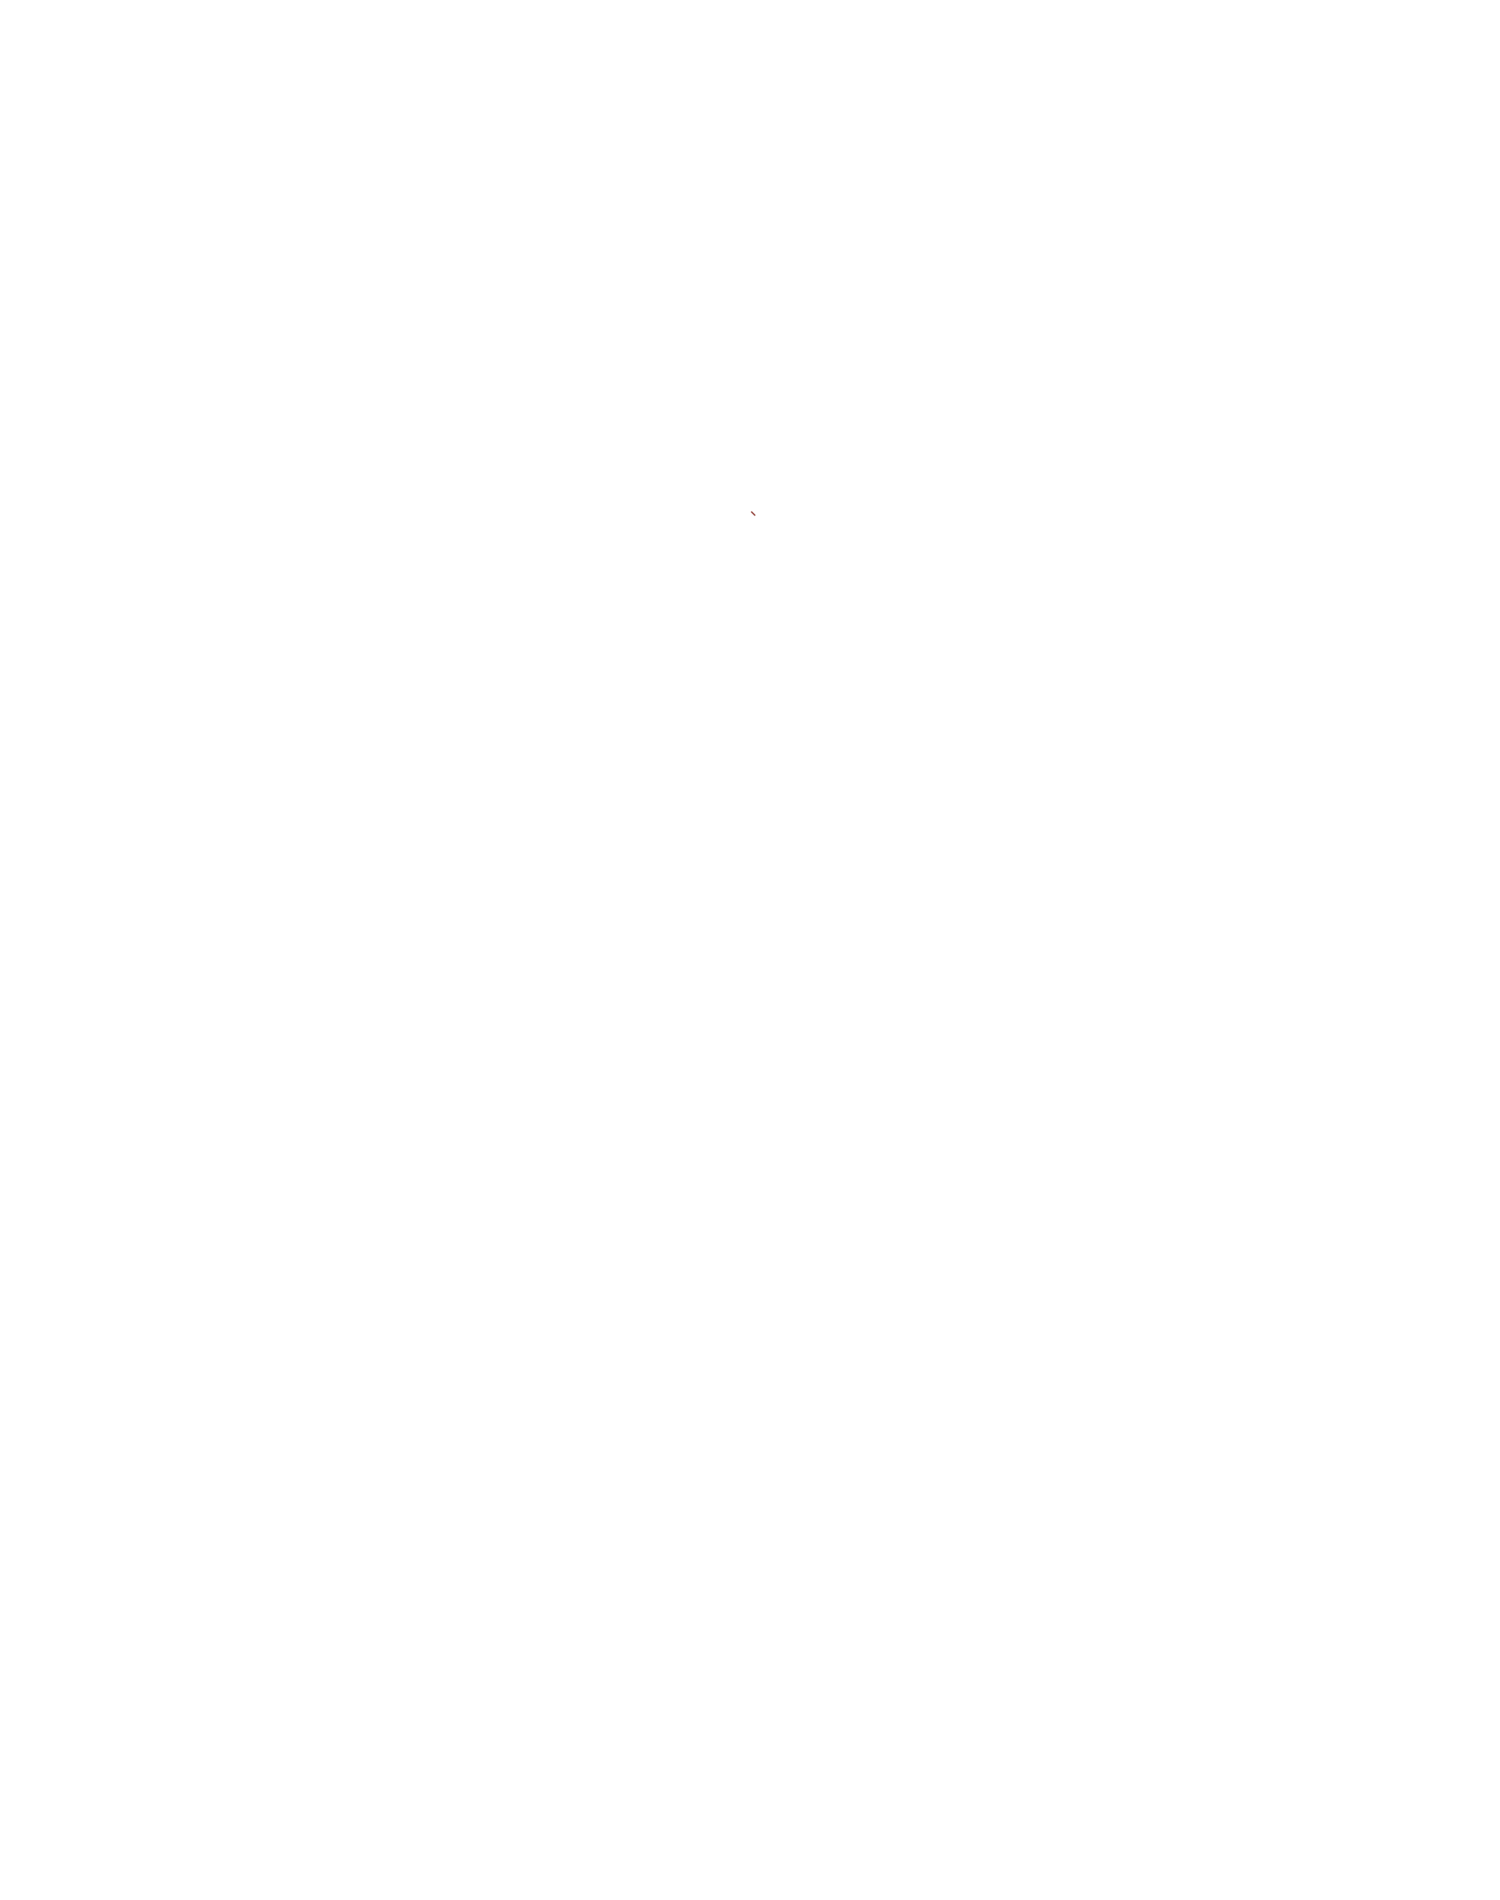 Credit Valley Golf Club Membership Trial